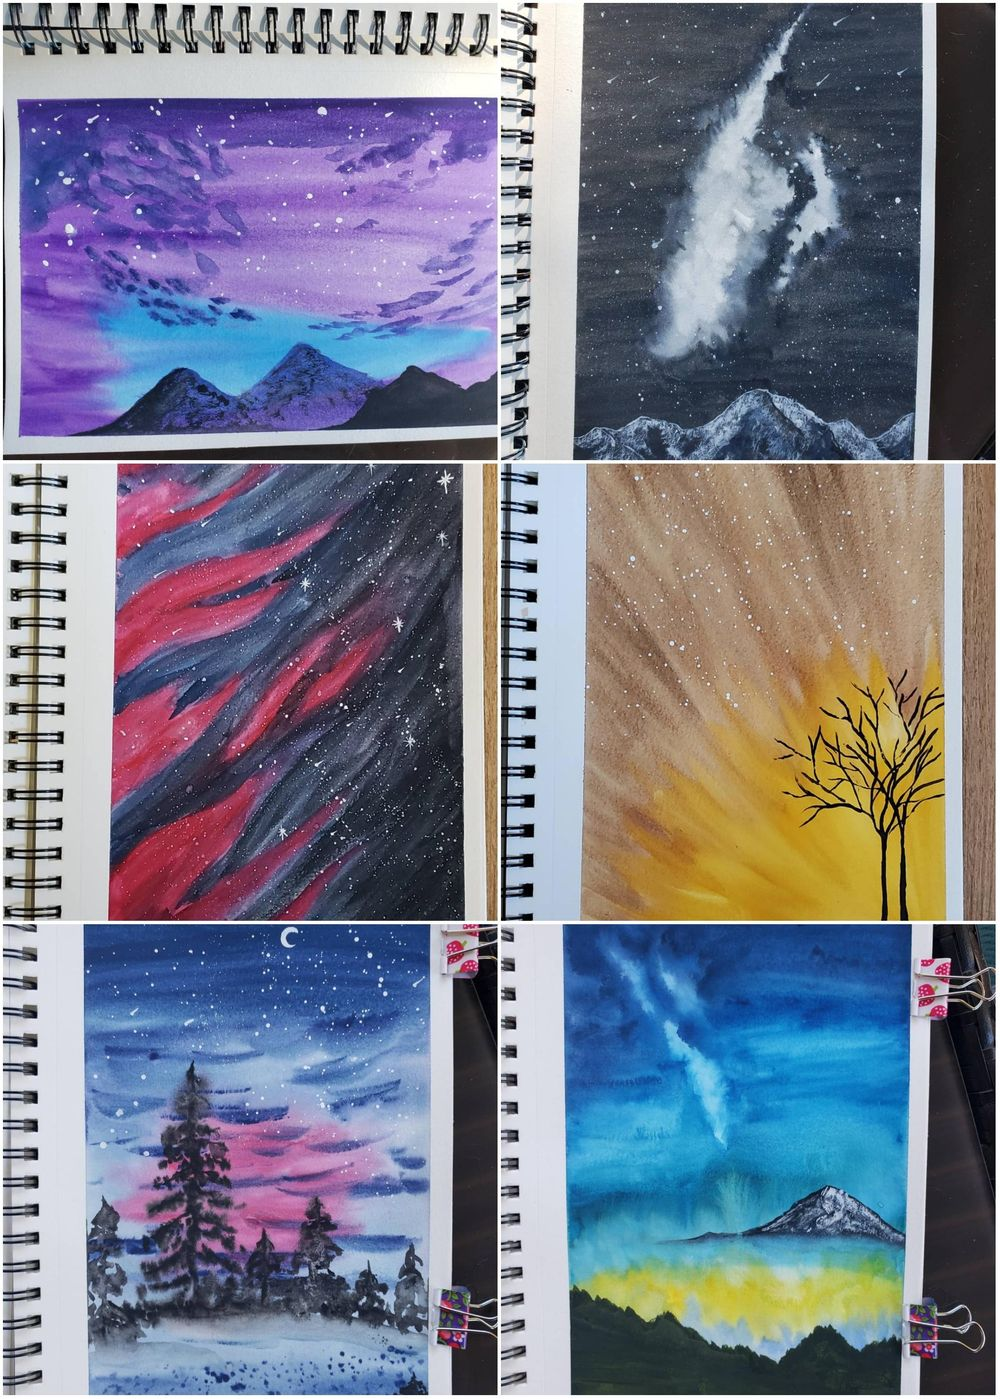 100 day watercolour challenge - image 5 - student project